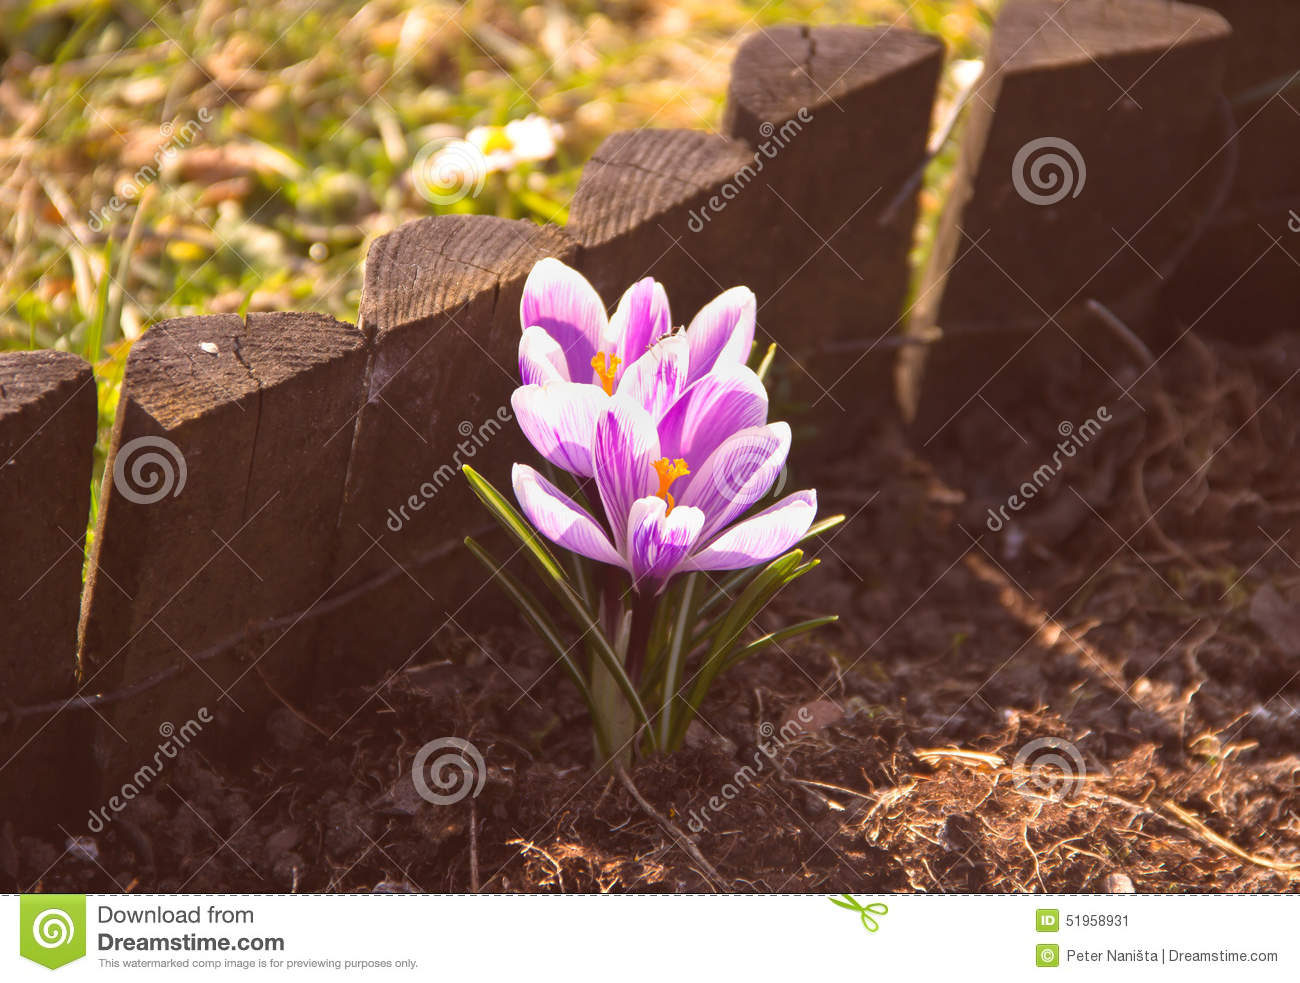 Pink flowers in early spring stock image image of nature download pink flowers in early spring stock image image of nature beautiful 51958931 mightylinksfo